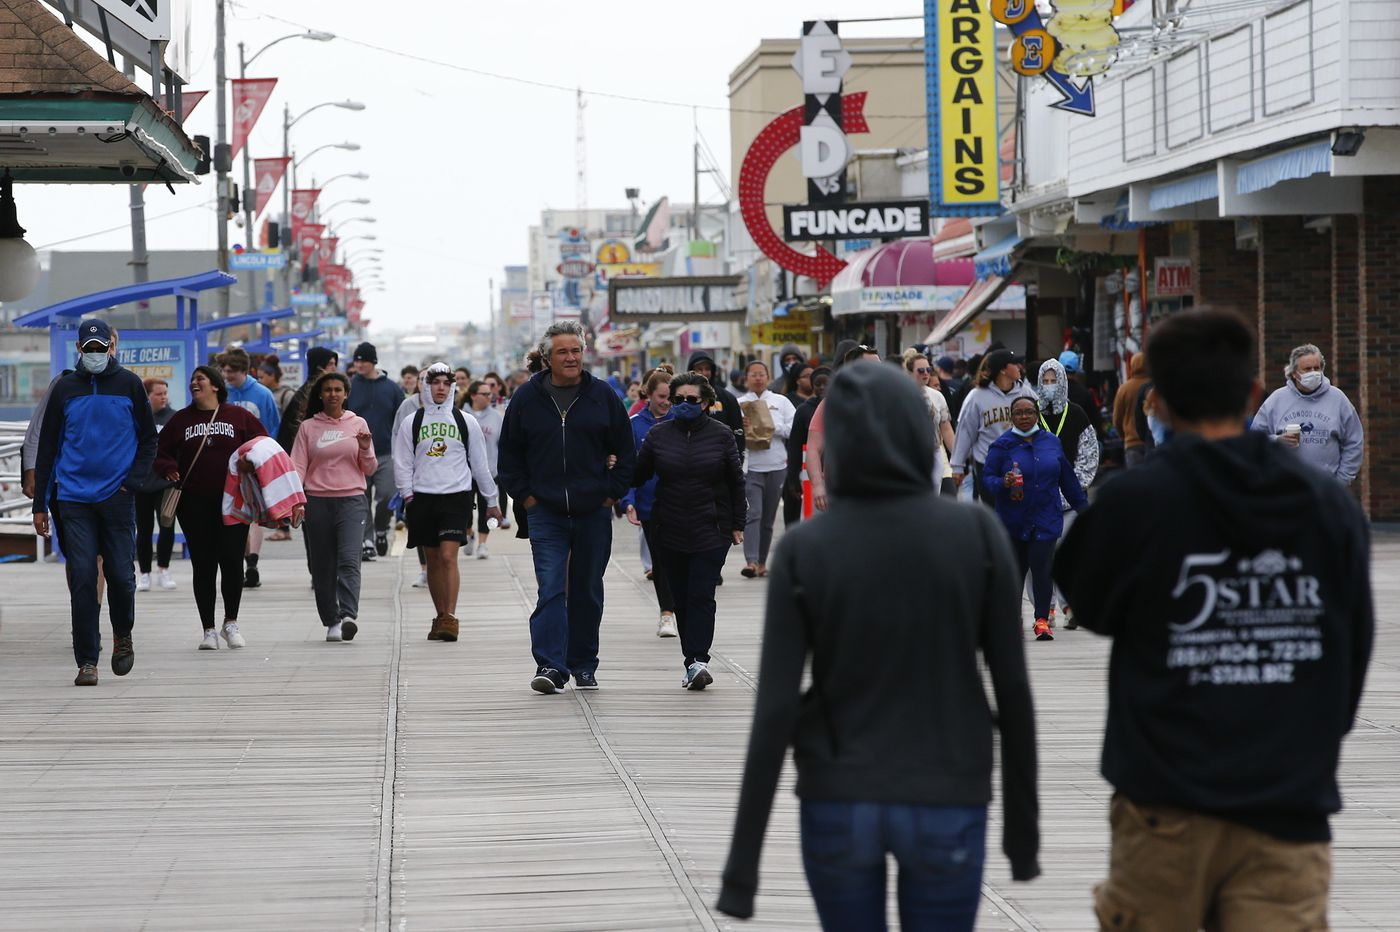 At the Jersey Shore, brisk winds, sparse crowds, and worry for what's ahead